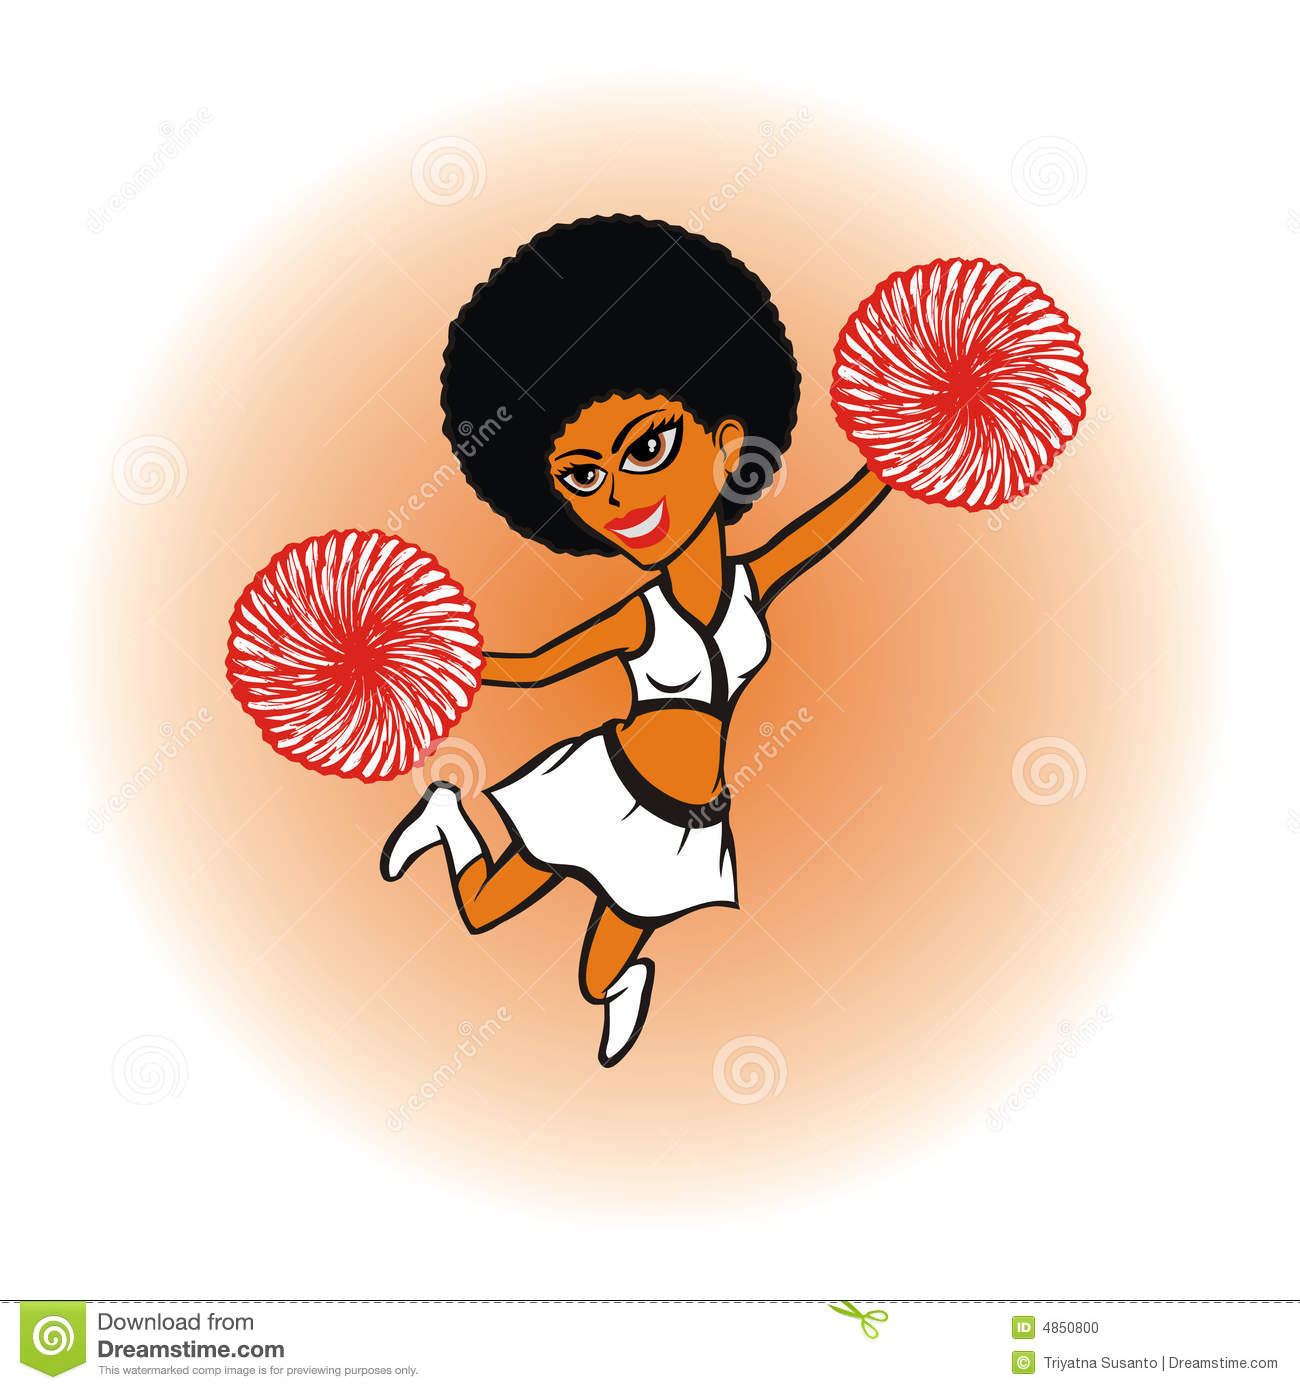 Cheerleader cartoon design illustration on white background.